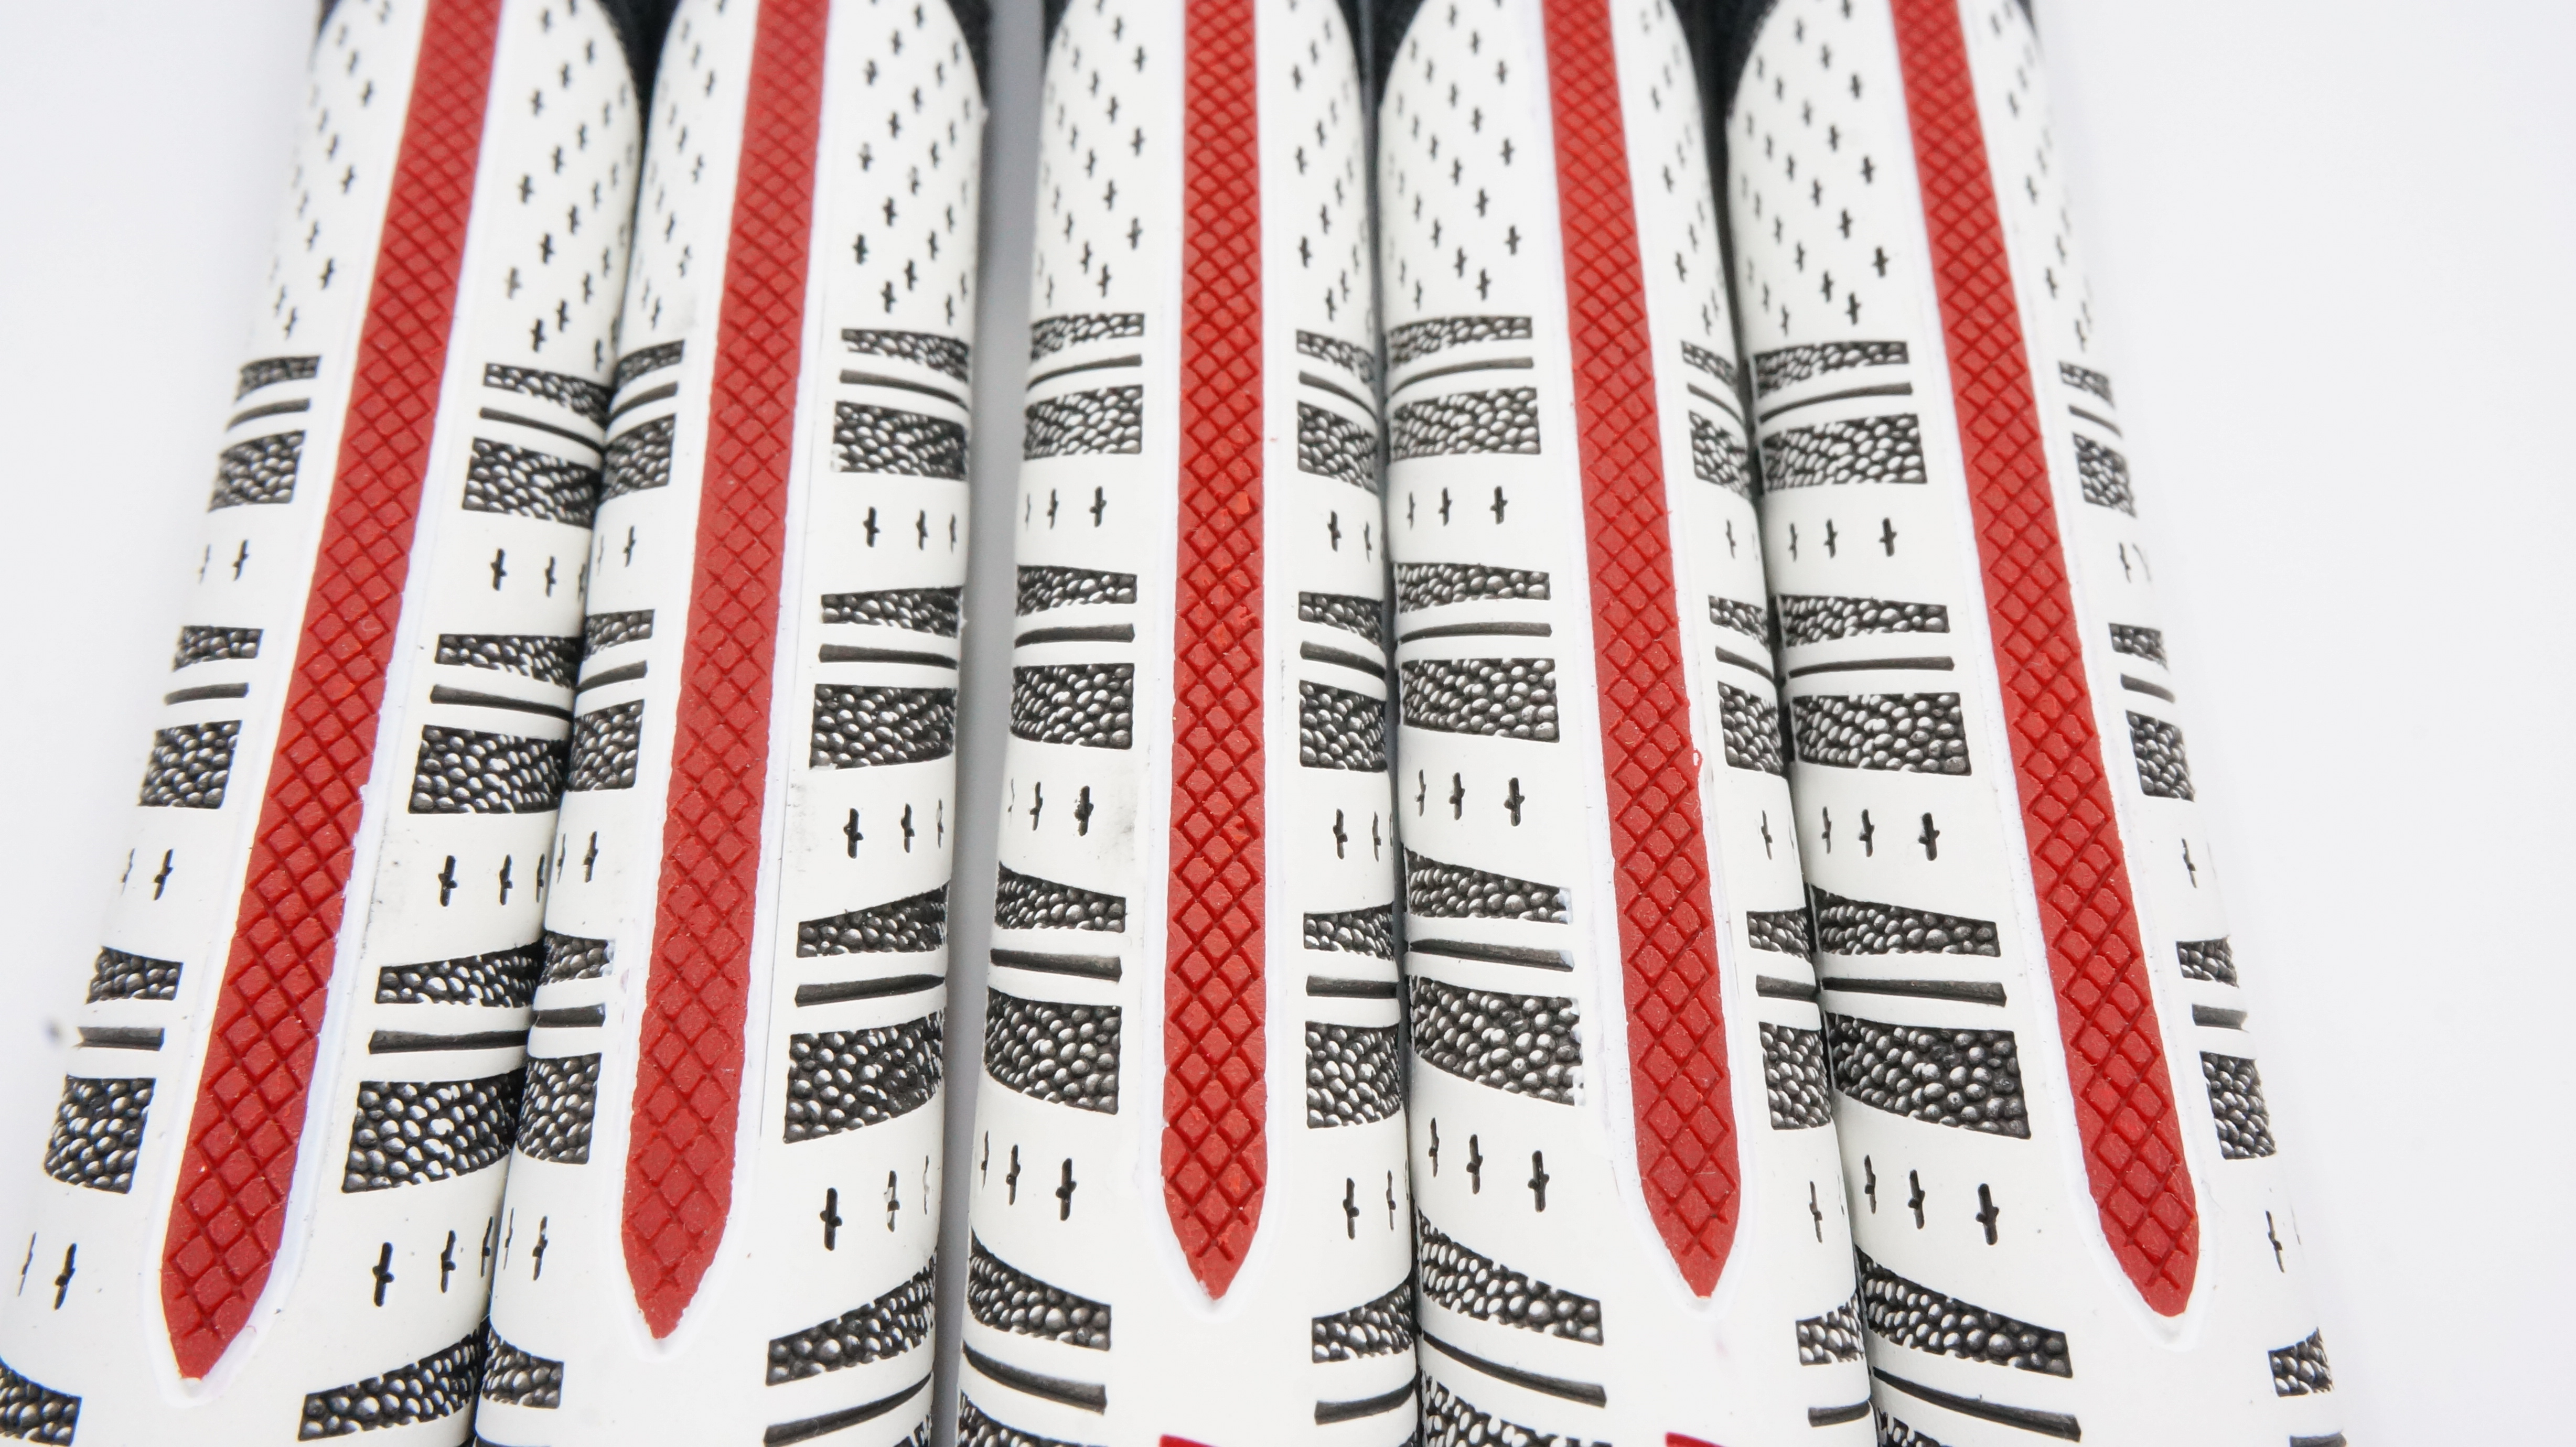 Golf Grips 60X Golf Club Grips Iron And Wood Grips Mc Standard Andmidsize 10pcs/lot  Free Shipping